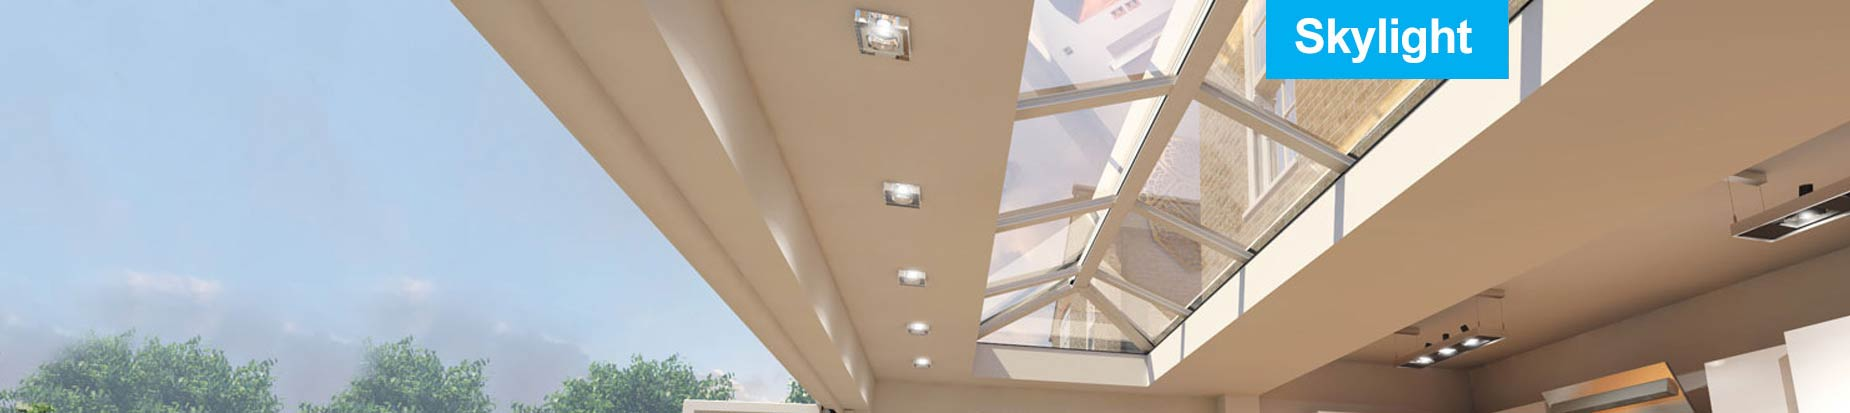 UPVC Roof lantern in white on white with double glazing.